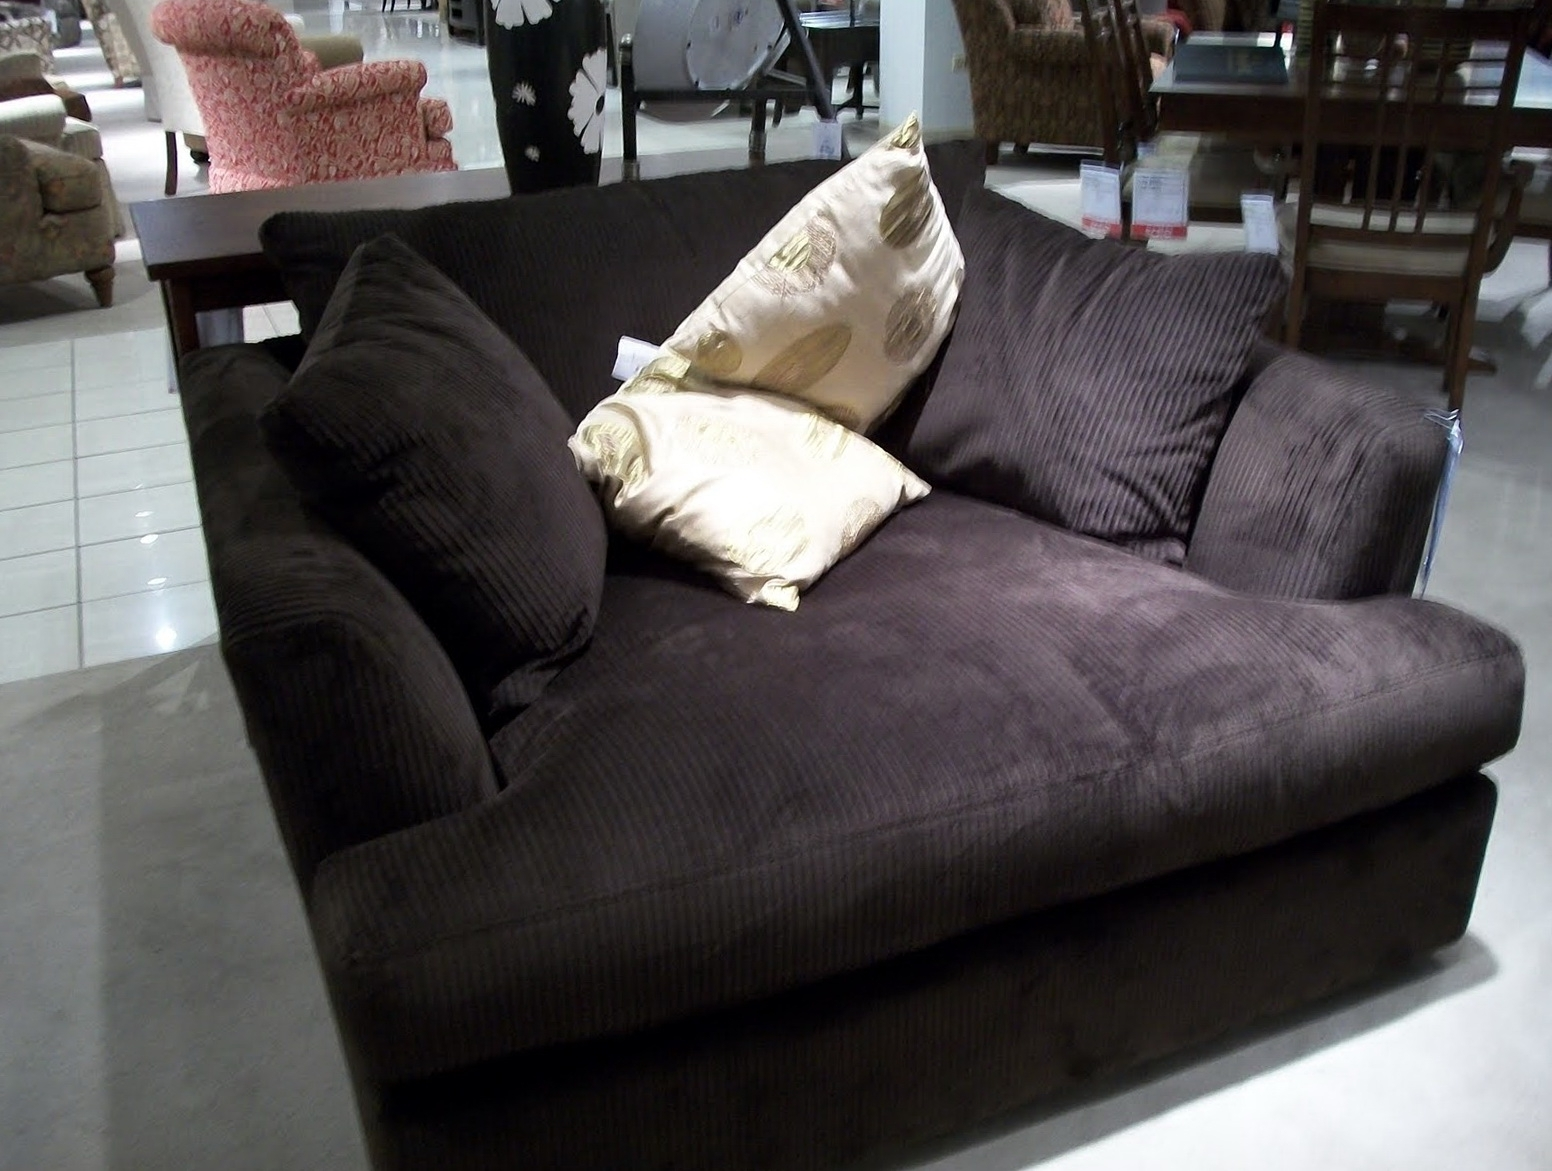 Large Chaise Lounge Sofa Chaise Lounges Living Room ...